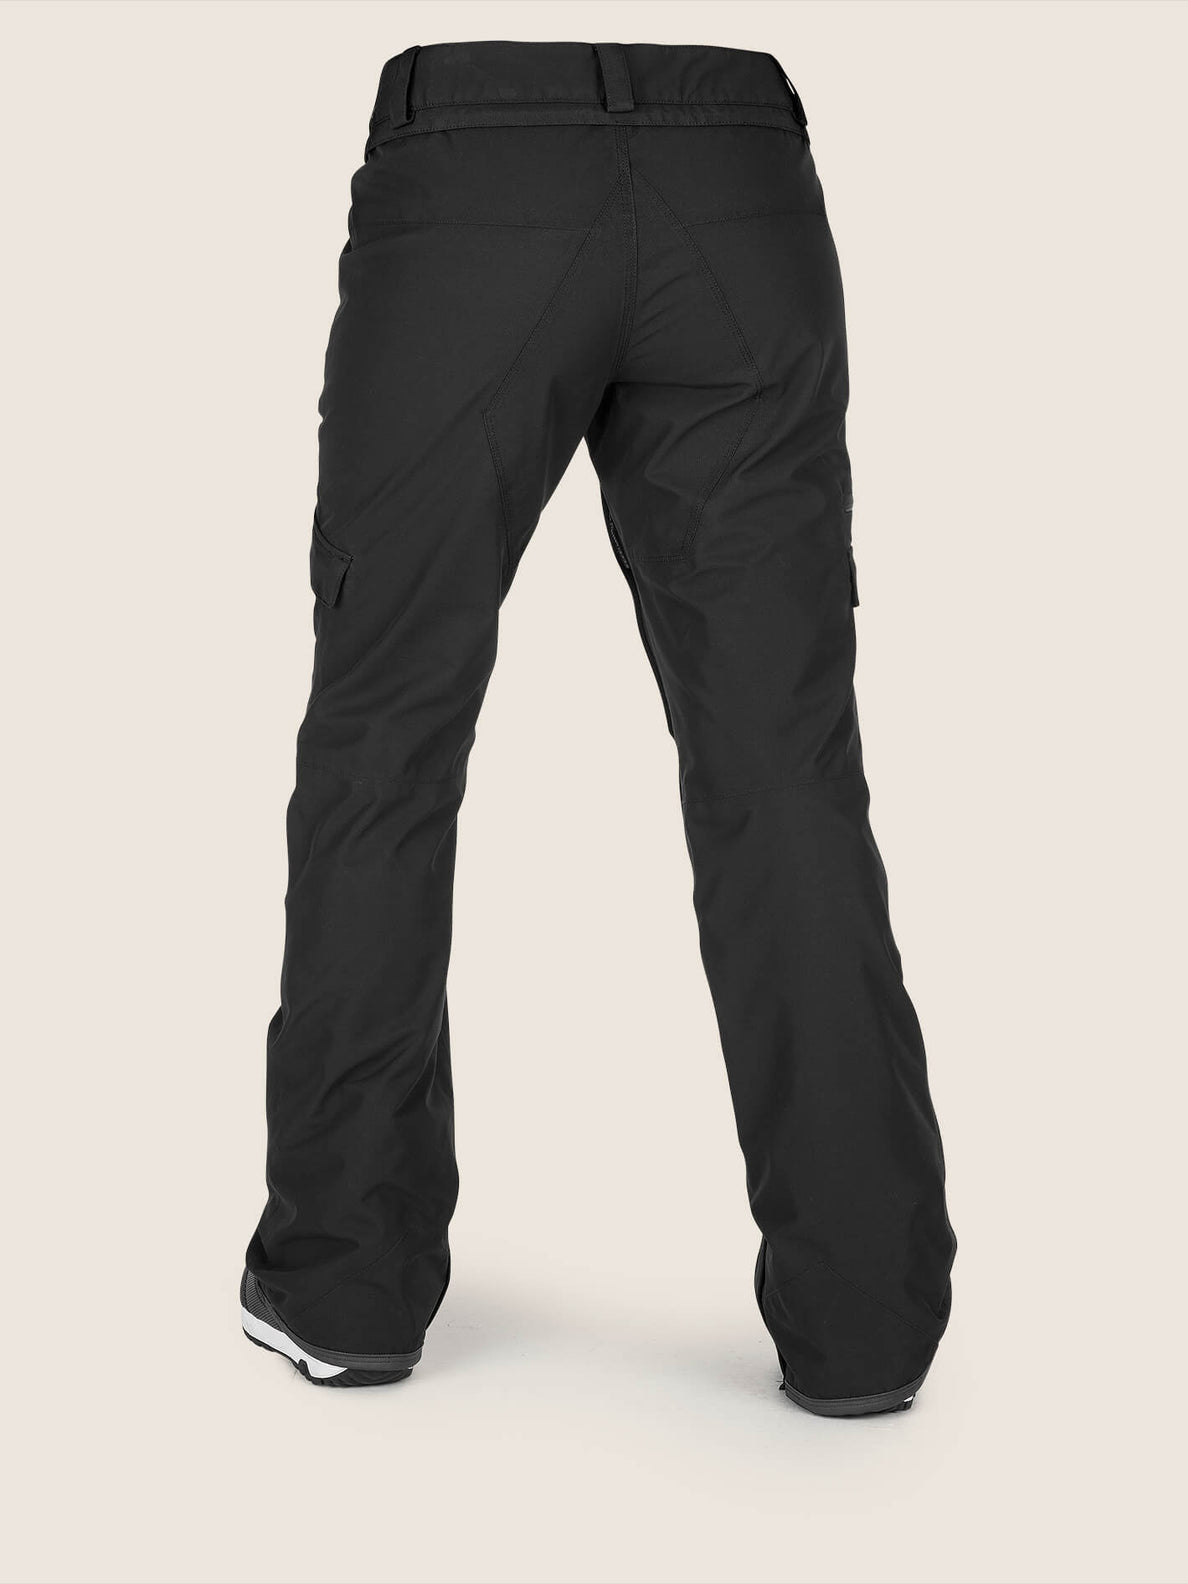 Aston Gore-tex Pant In Black, Back View